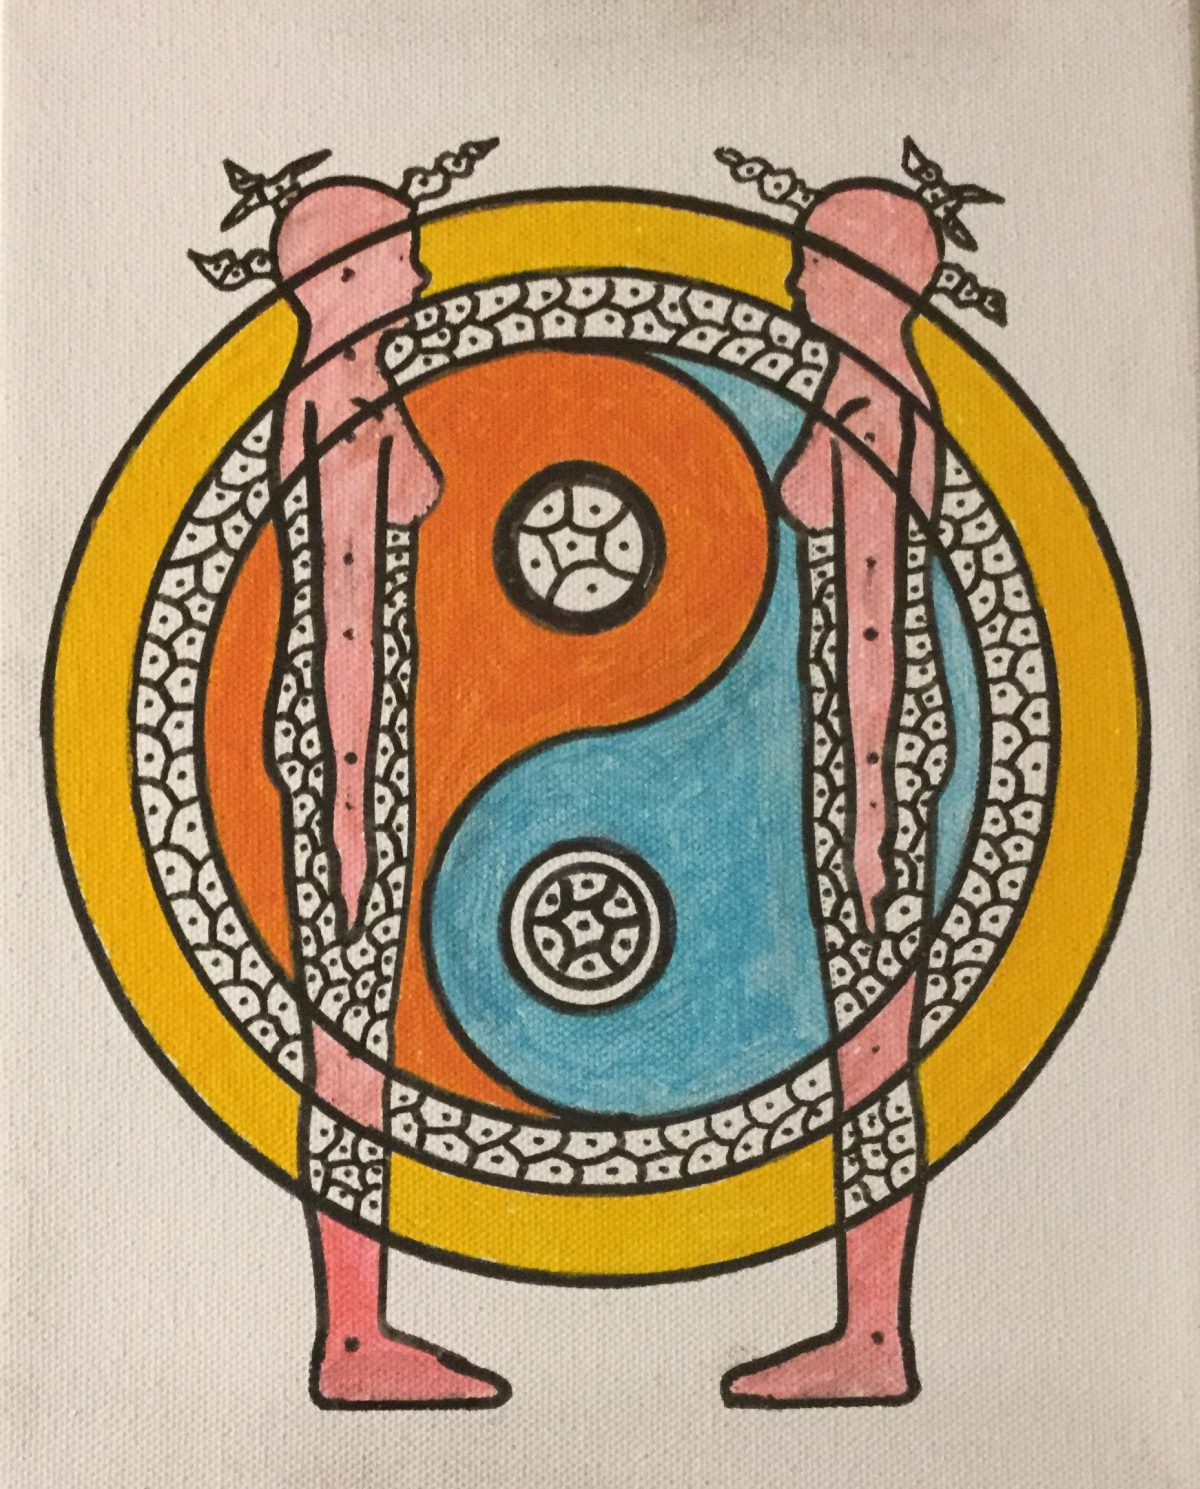 A painting showing the outline of two pink figures facing each other, in front  of concentric circles.